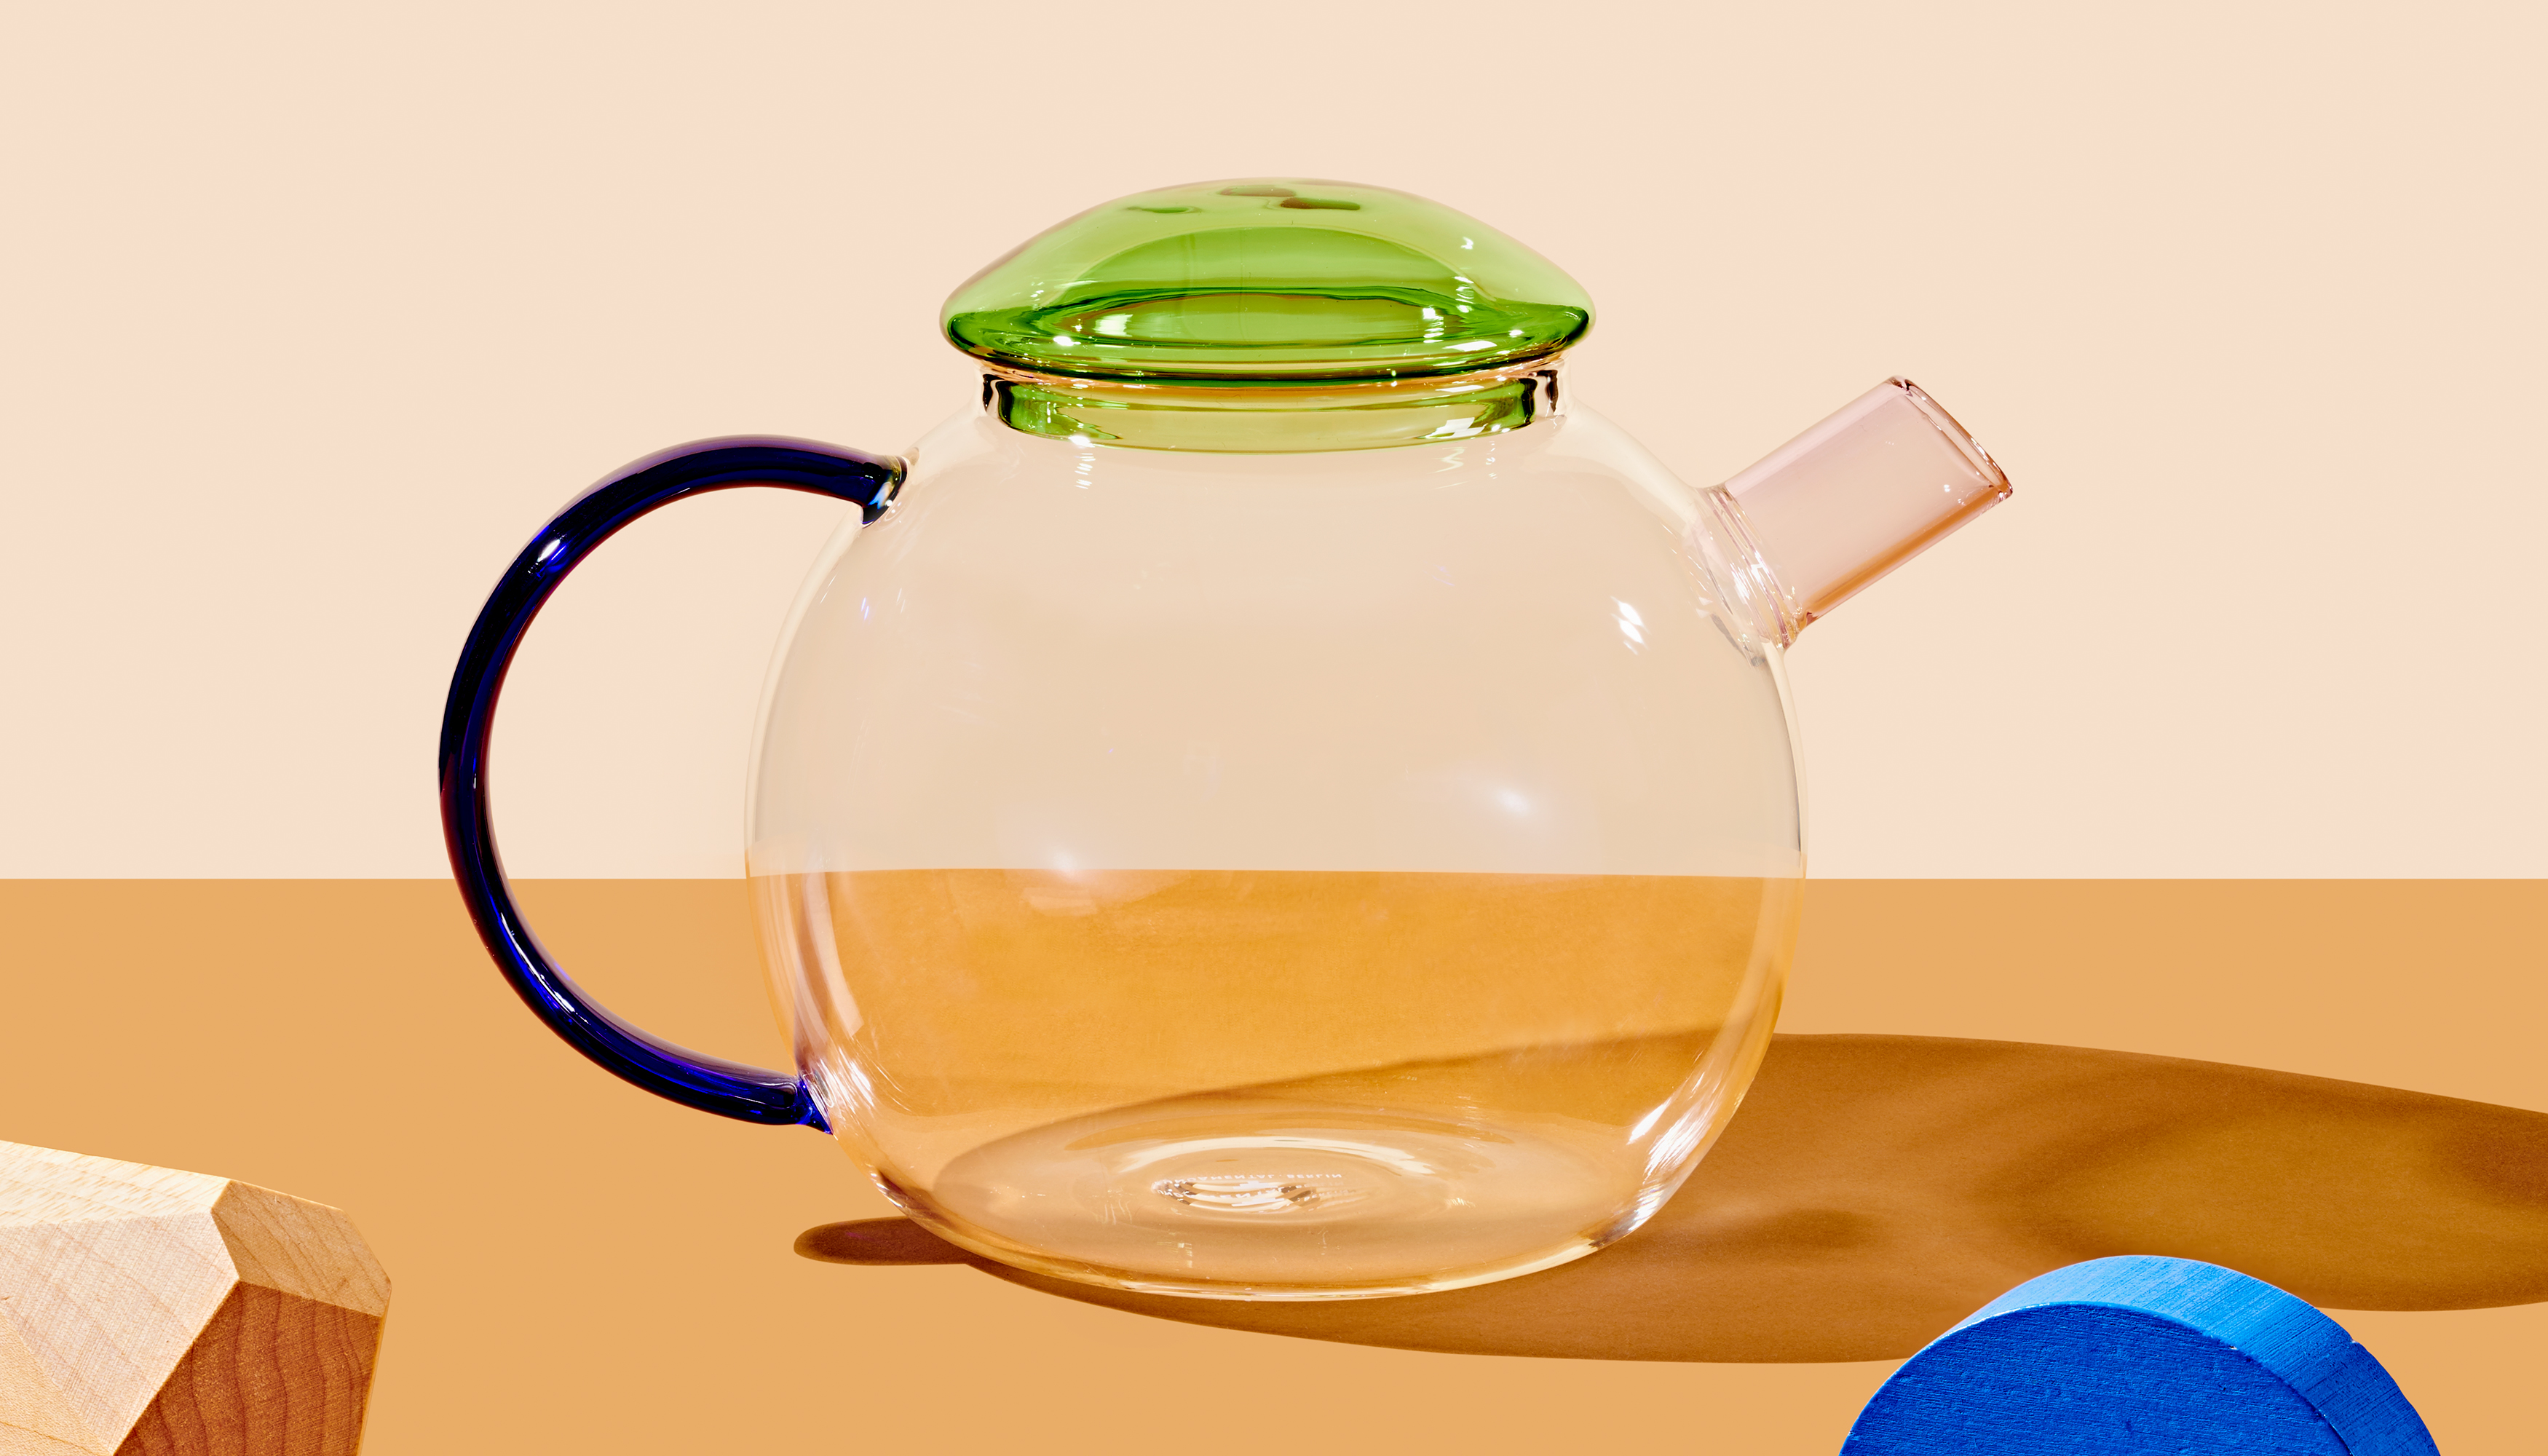 A round shaped clear glass teapot with a clear green lid and a thin, geometric dark blue handle.